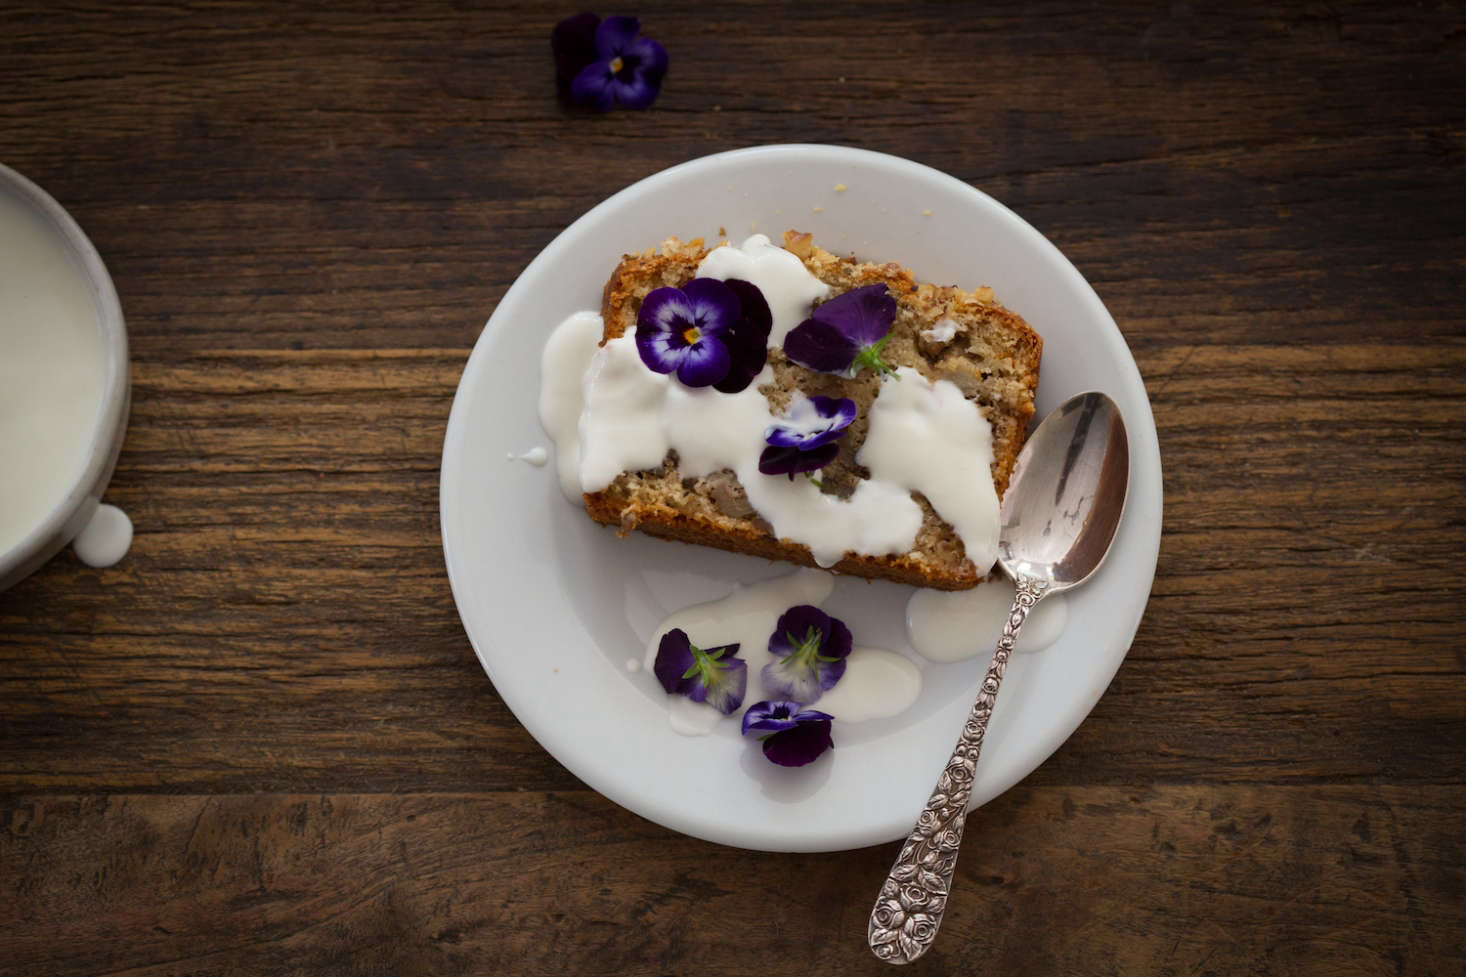 Edible pansies pair well with our Recipe: Amaranth Banana Bread, Flowers Optional.